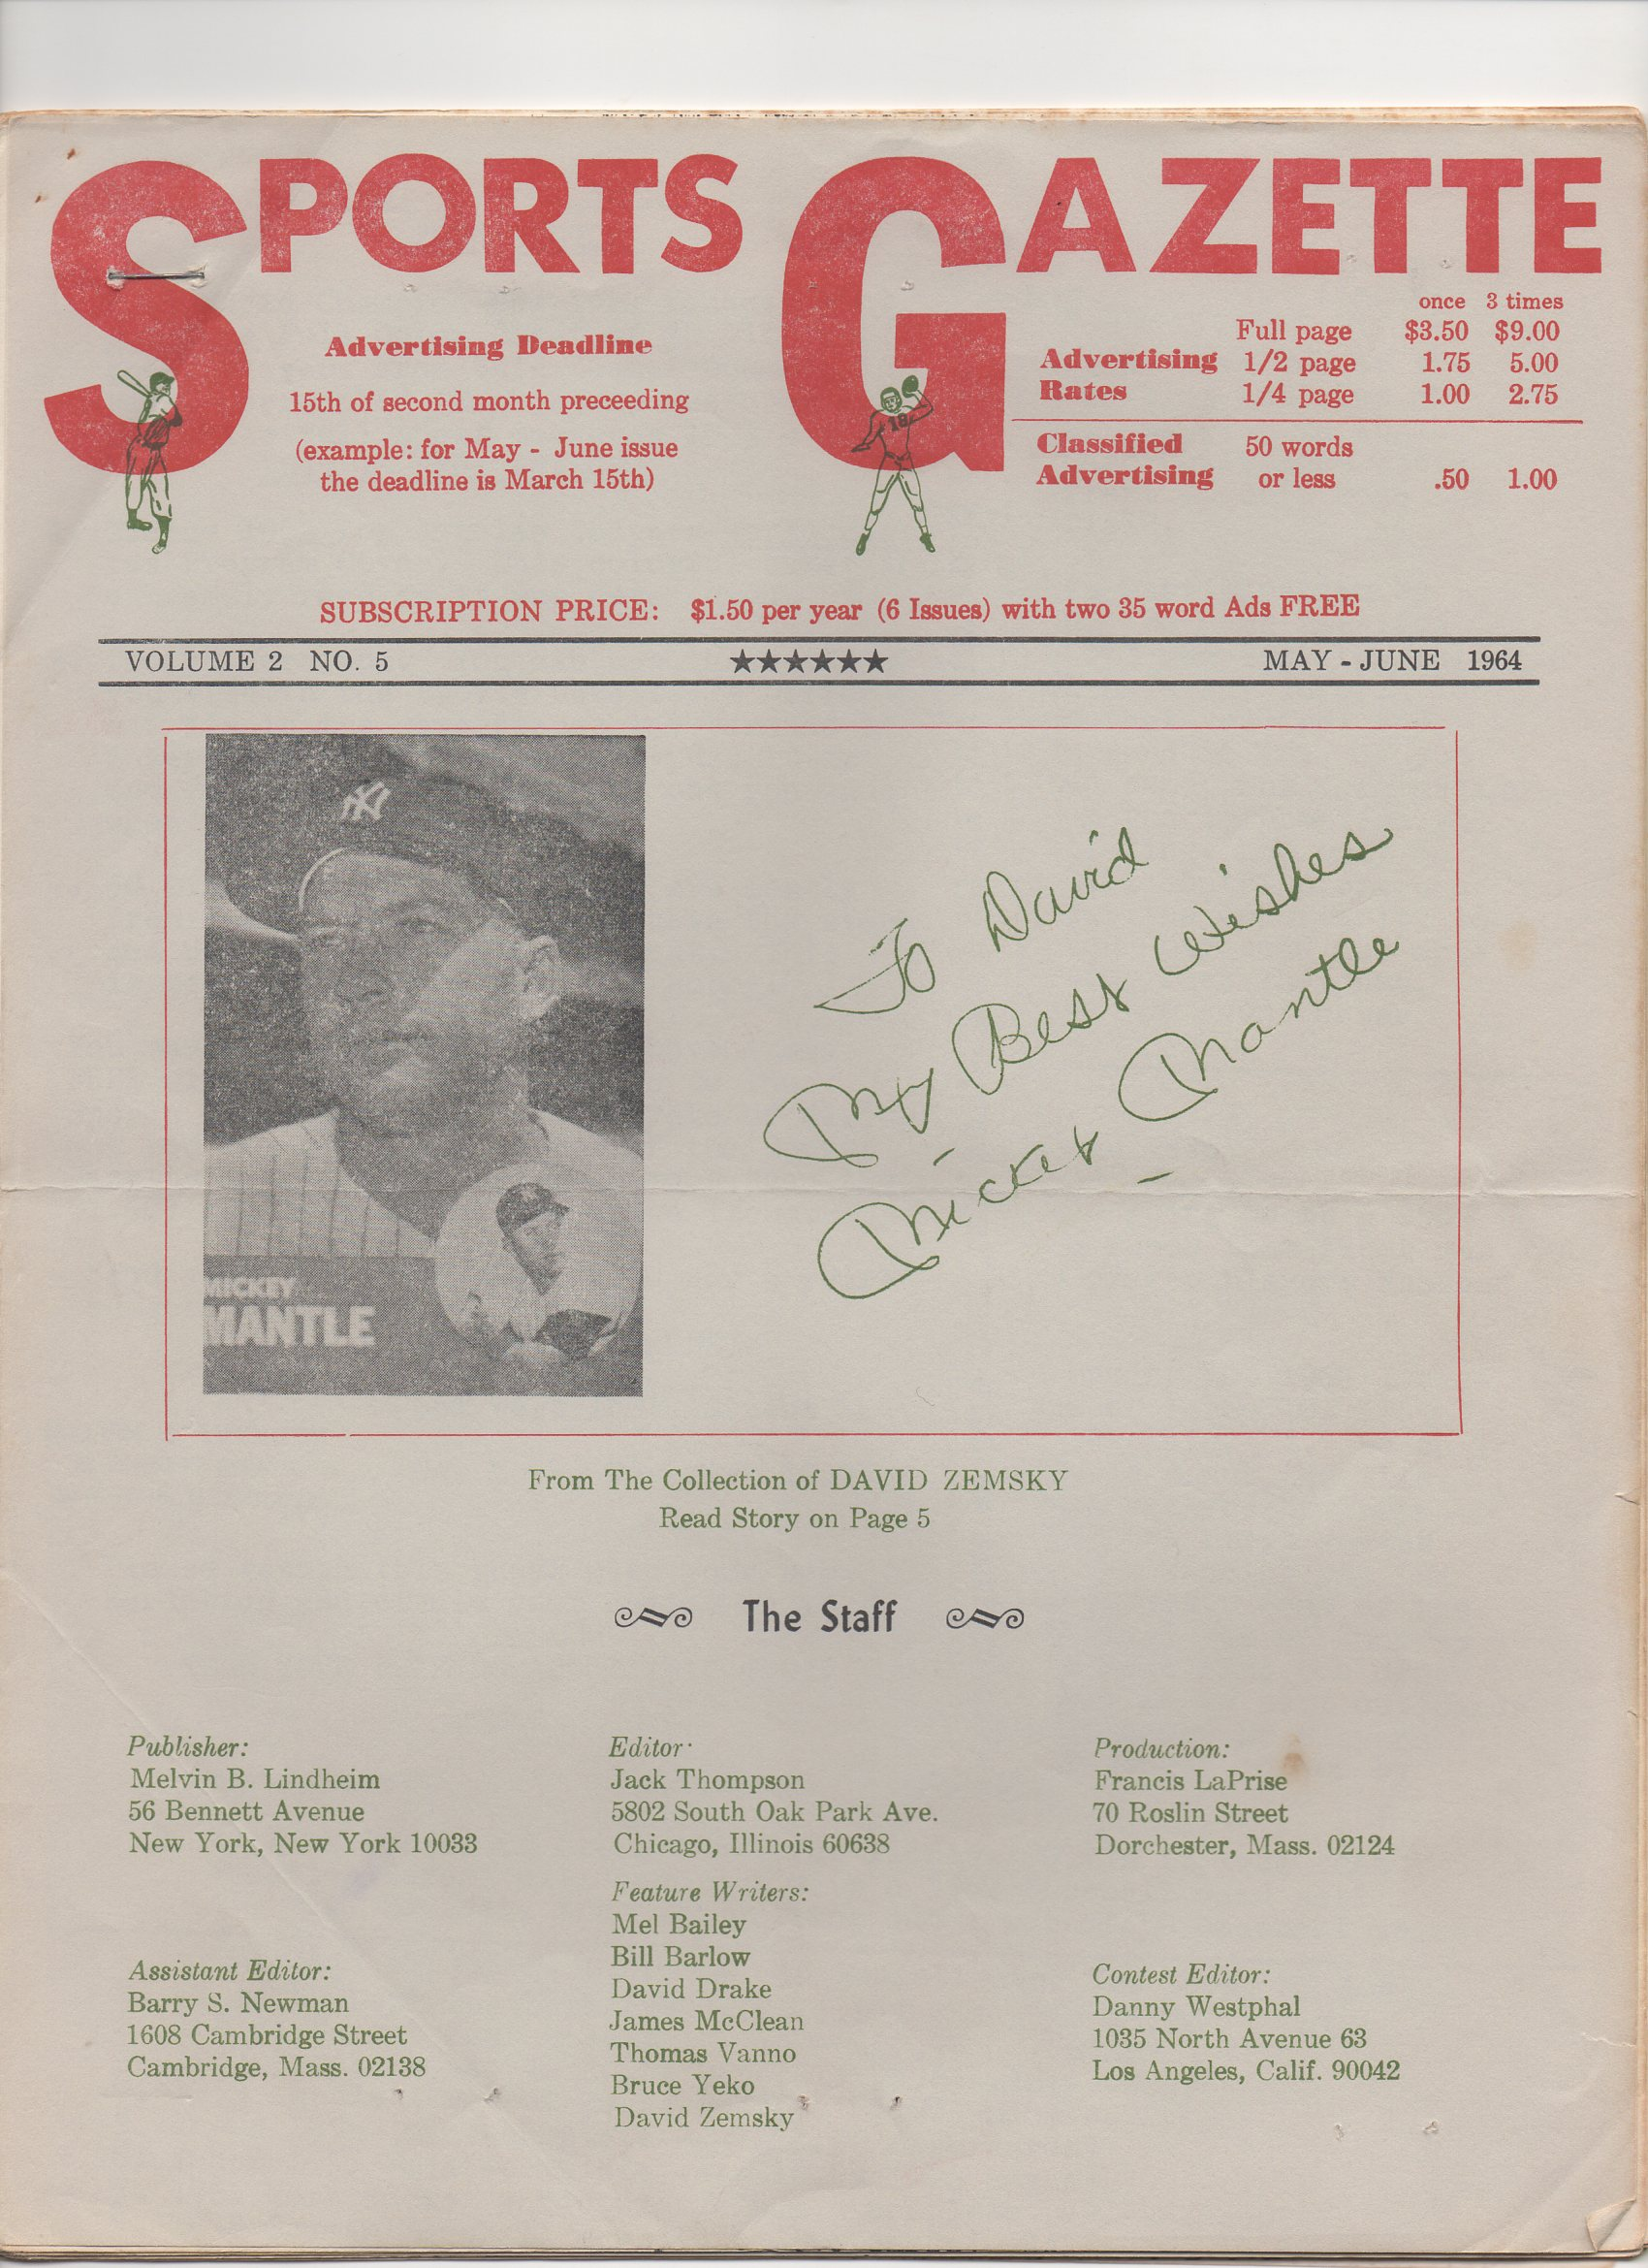 1964 sports gazette may-june, vol. 2, no. 5